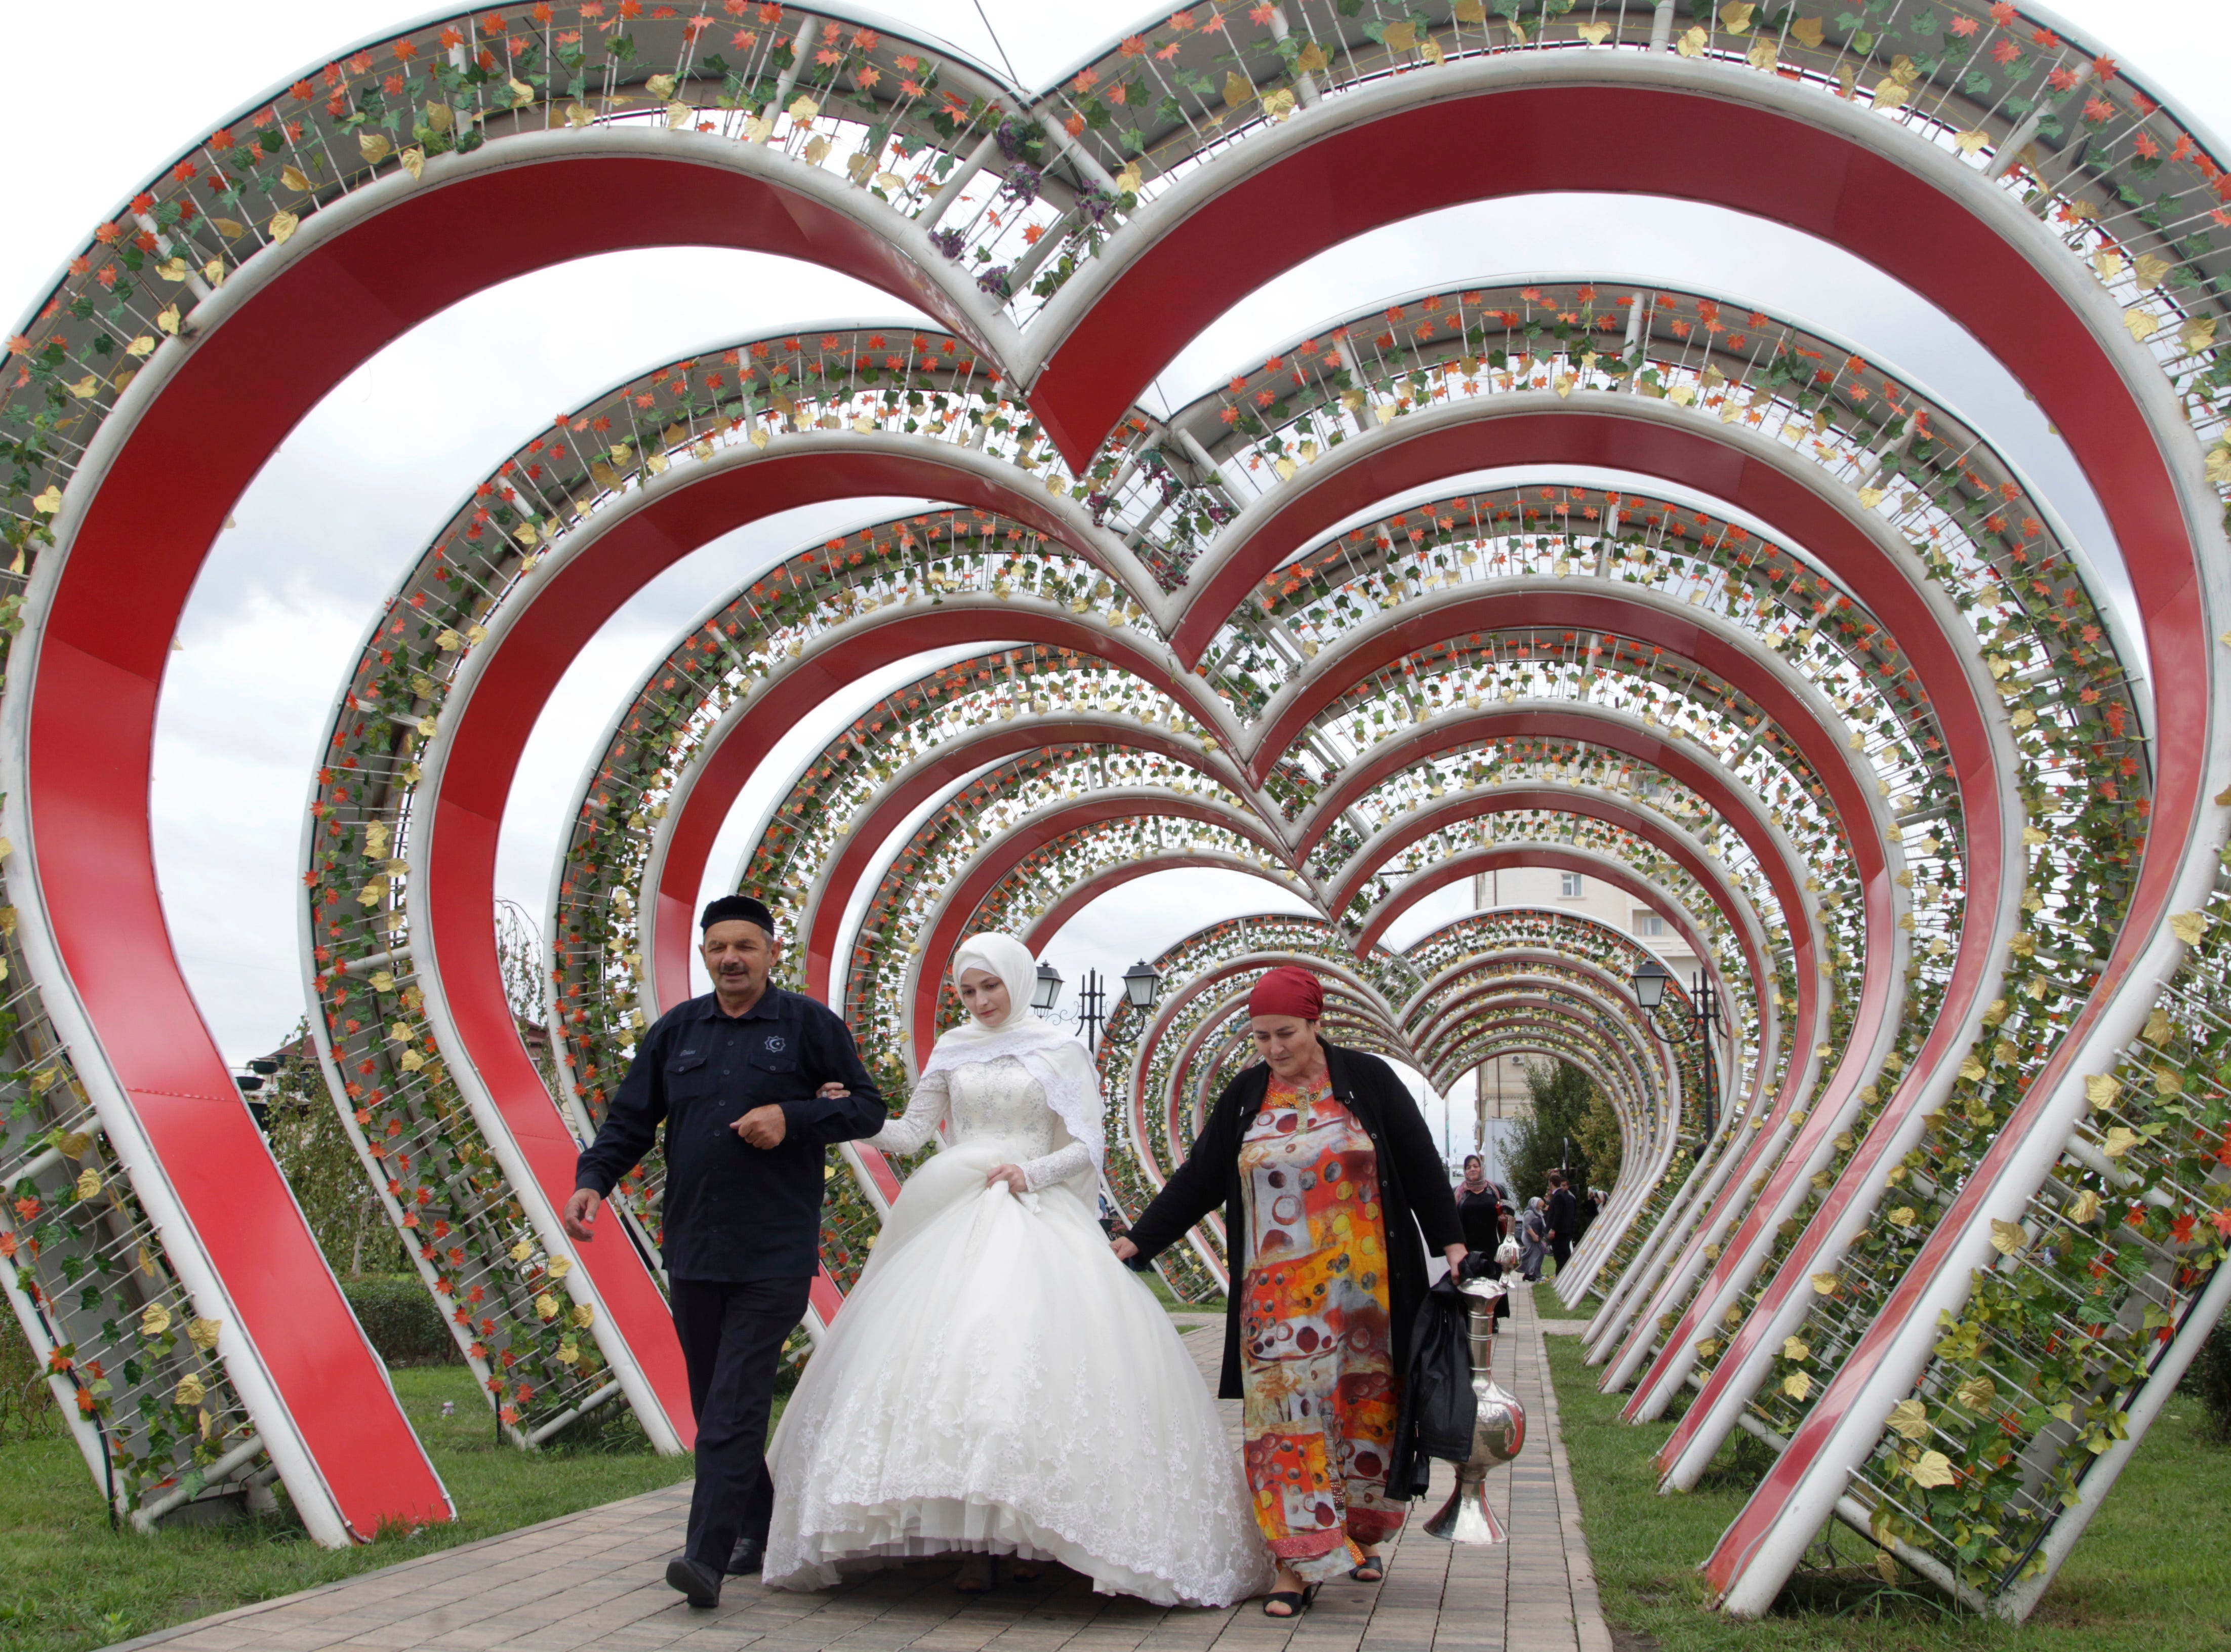 A view of one of 200 wedding ceremonies in Grozny, Russia, to mark the 200th birthday of the city on Friday, Oct. 5, 2018.